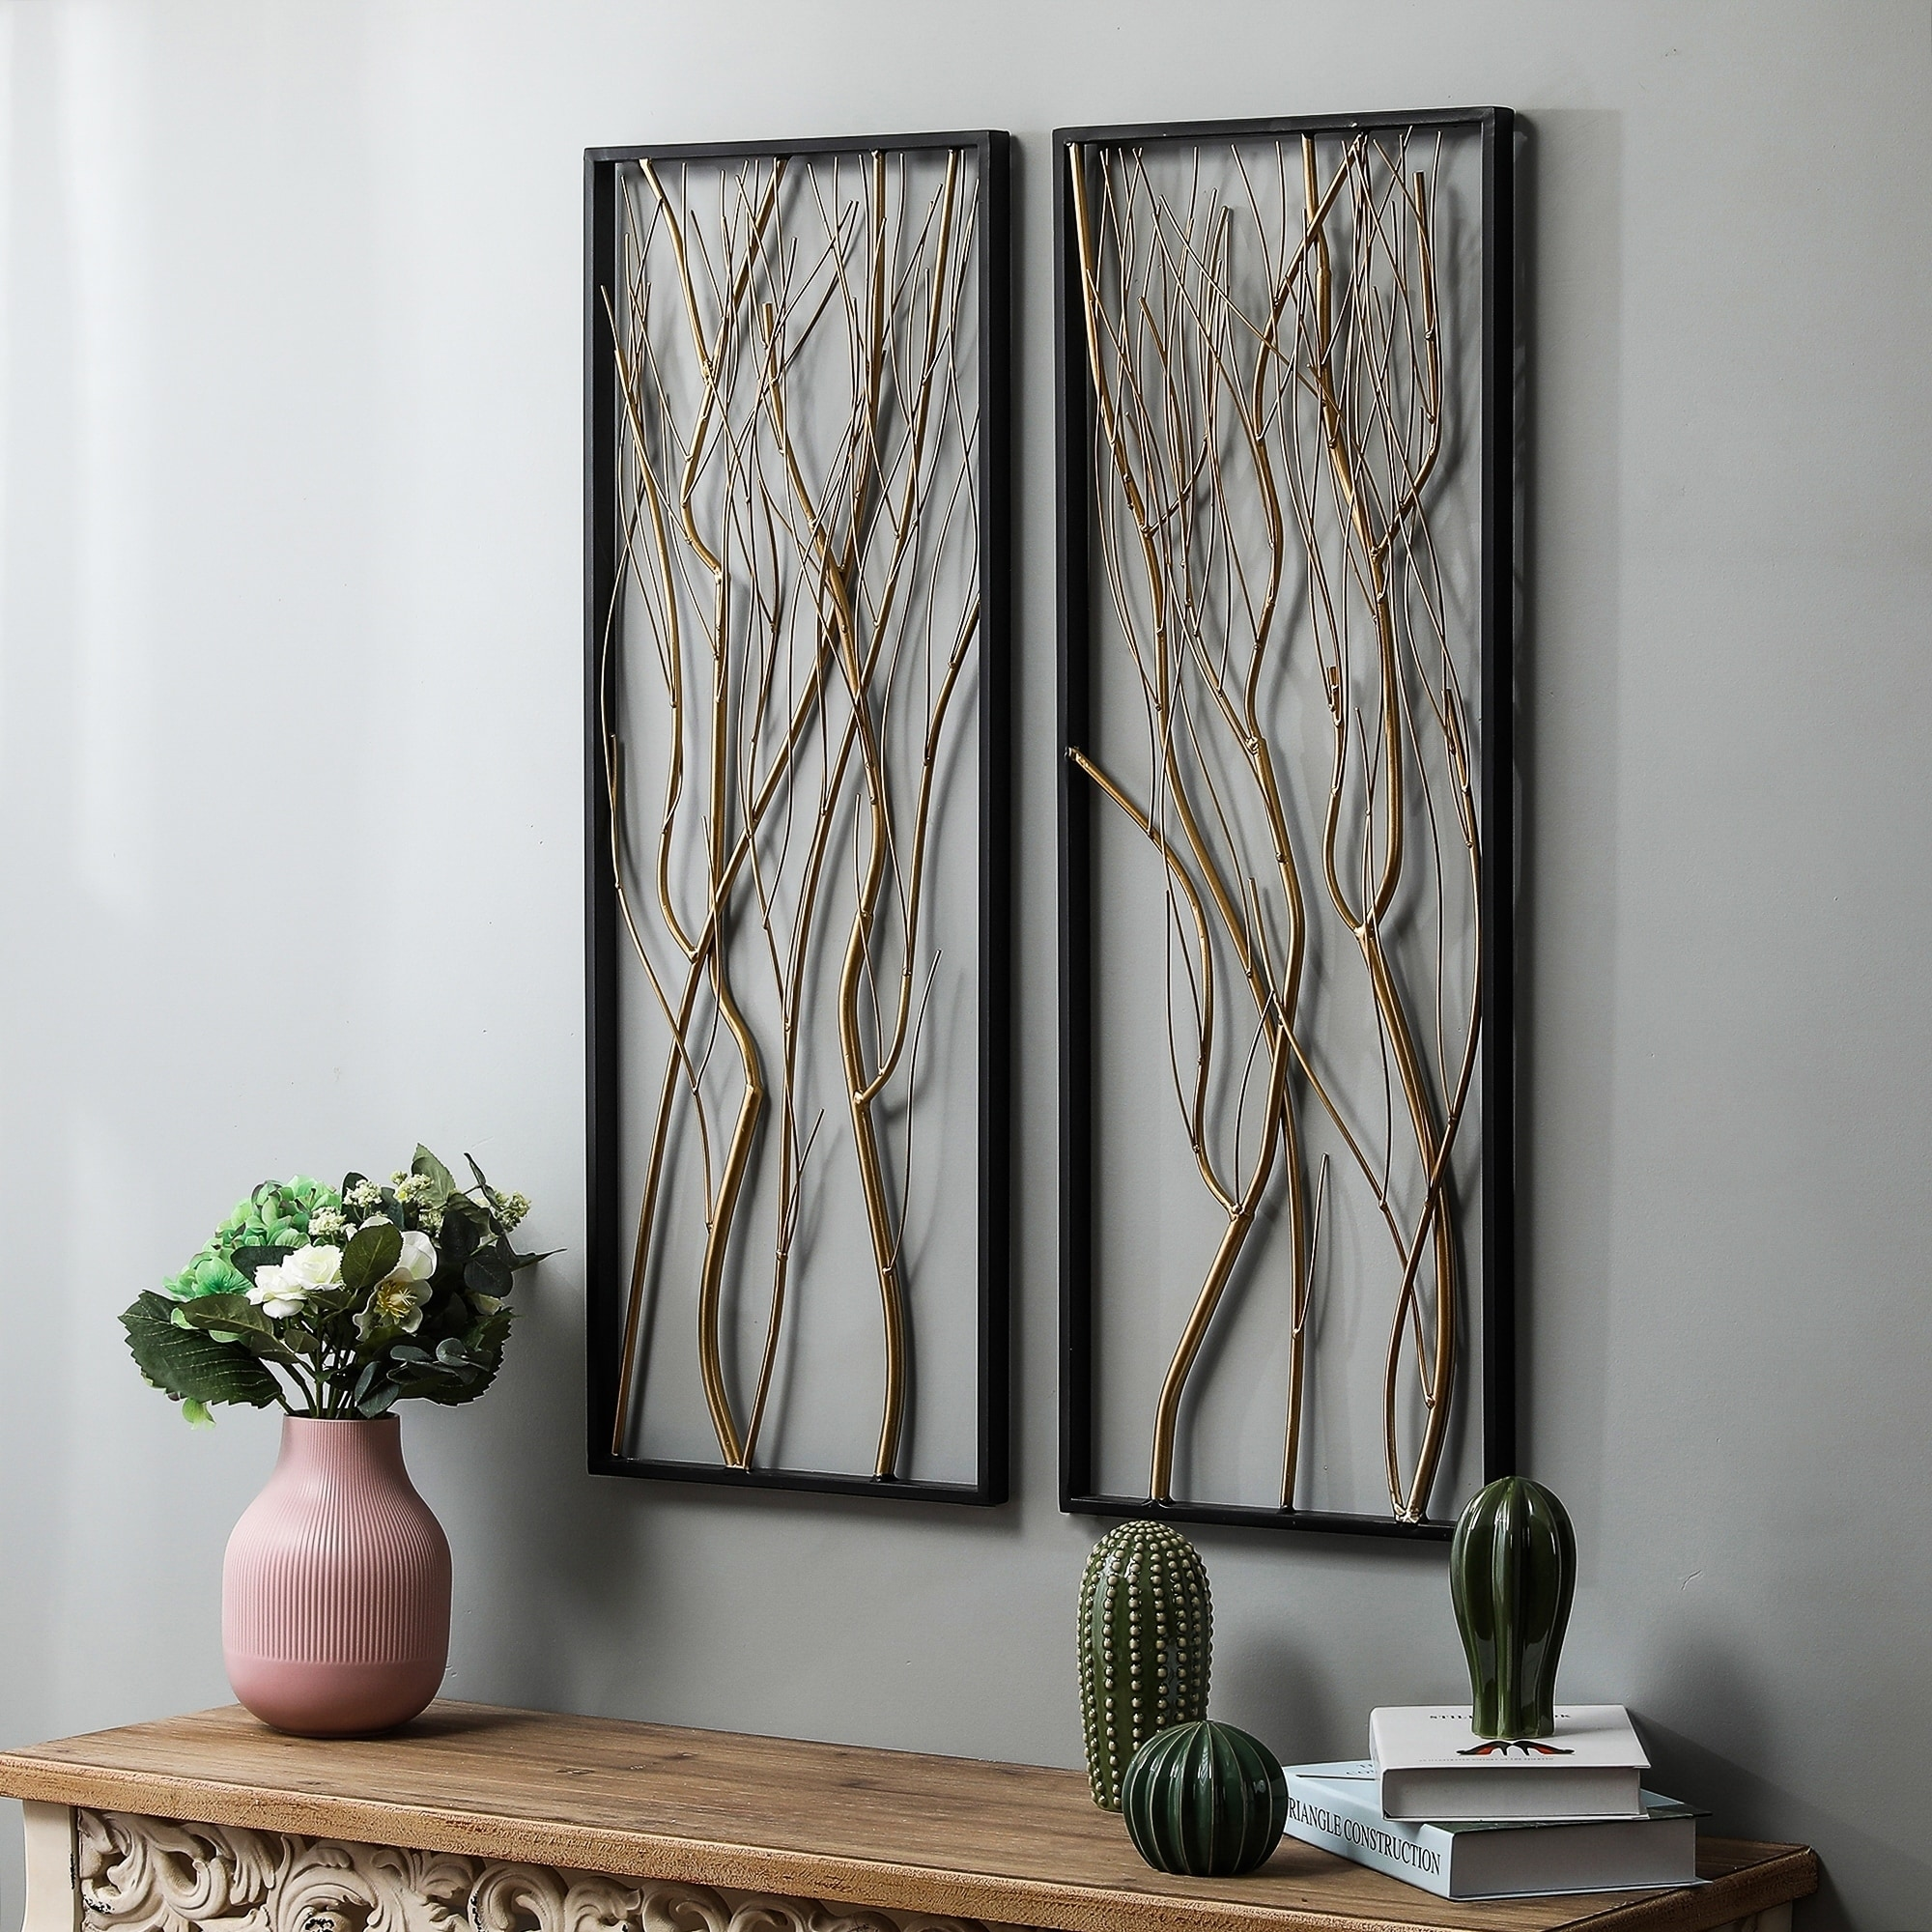 2 Piece Metal Gold Branch Wall Decor Overstock 30932147